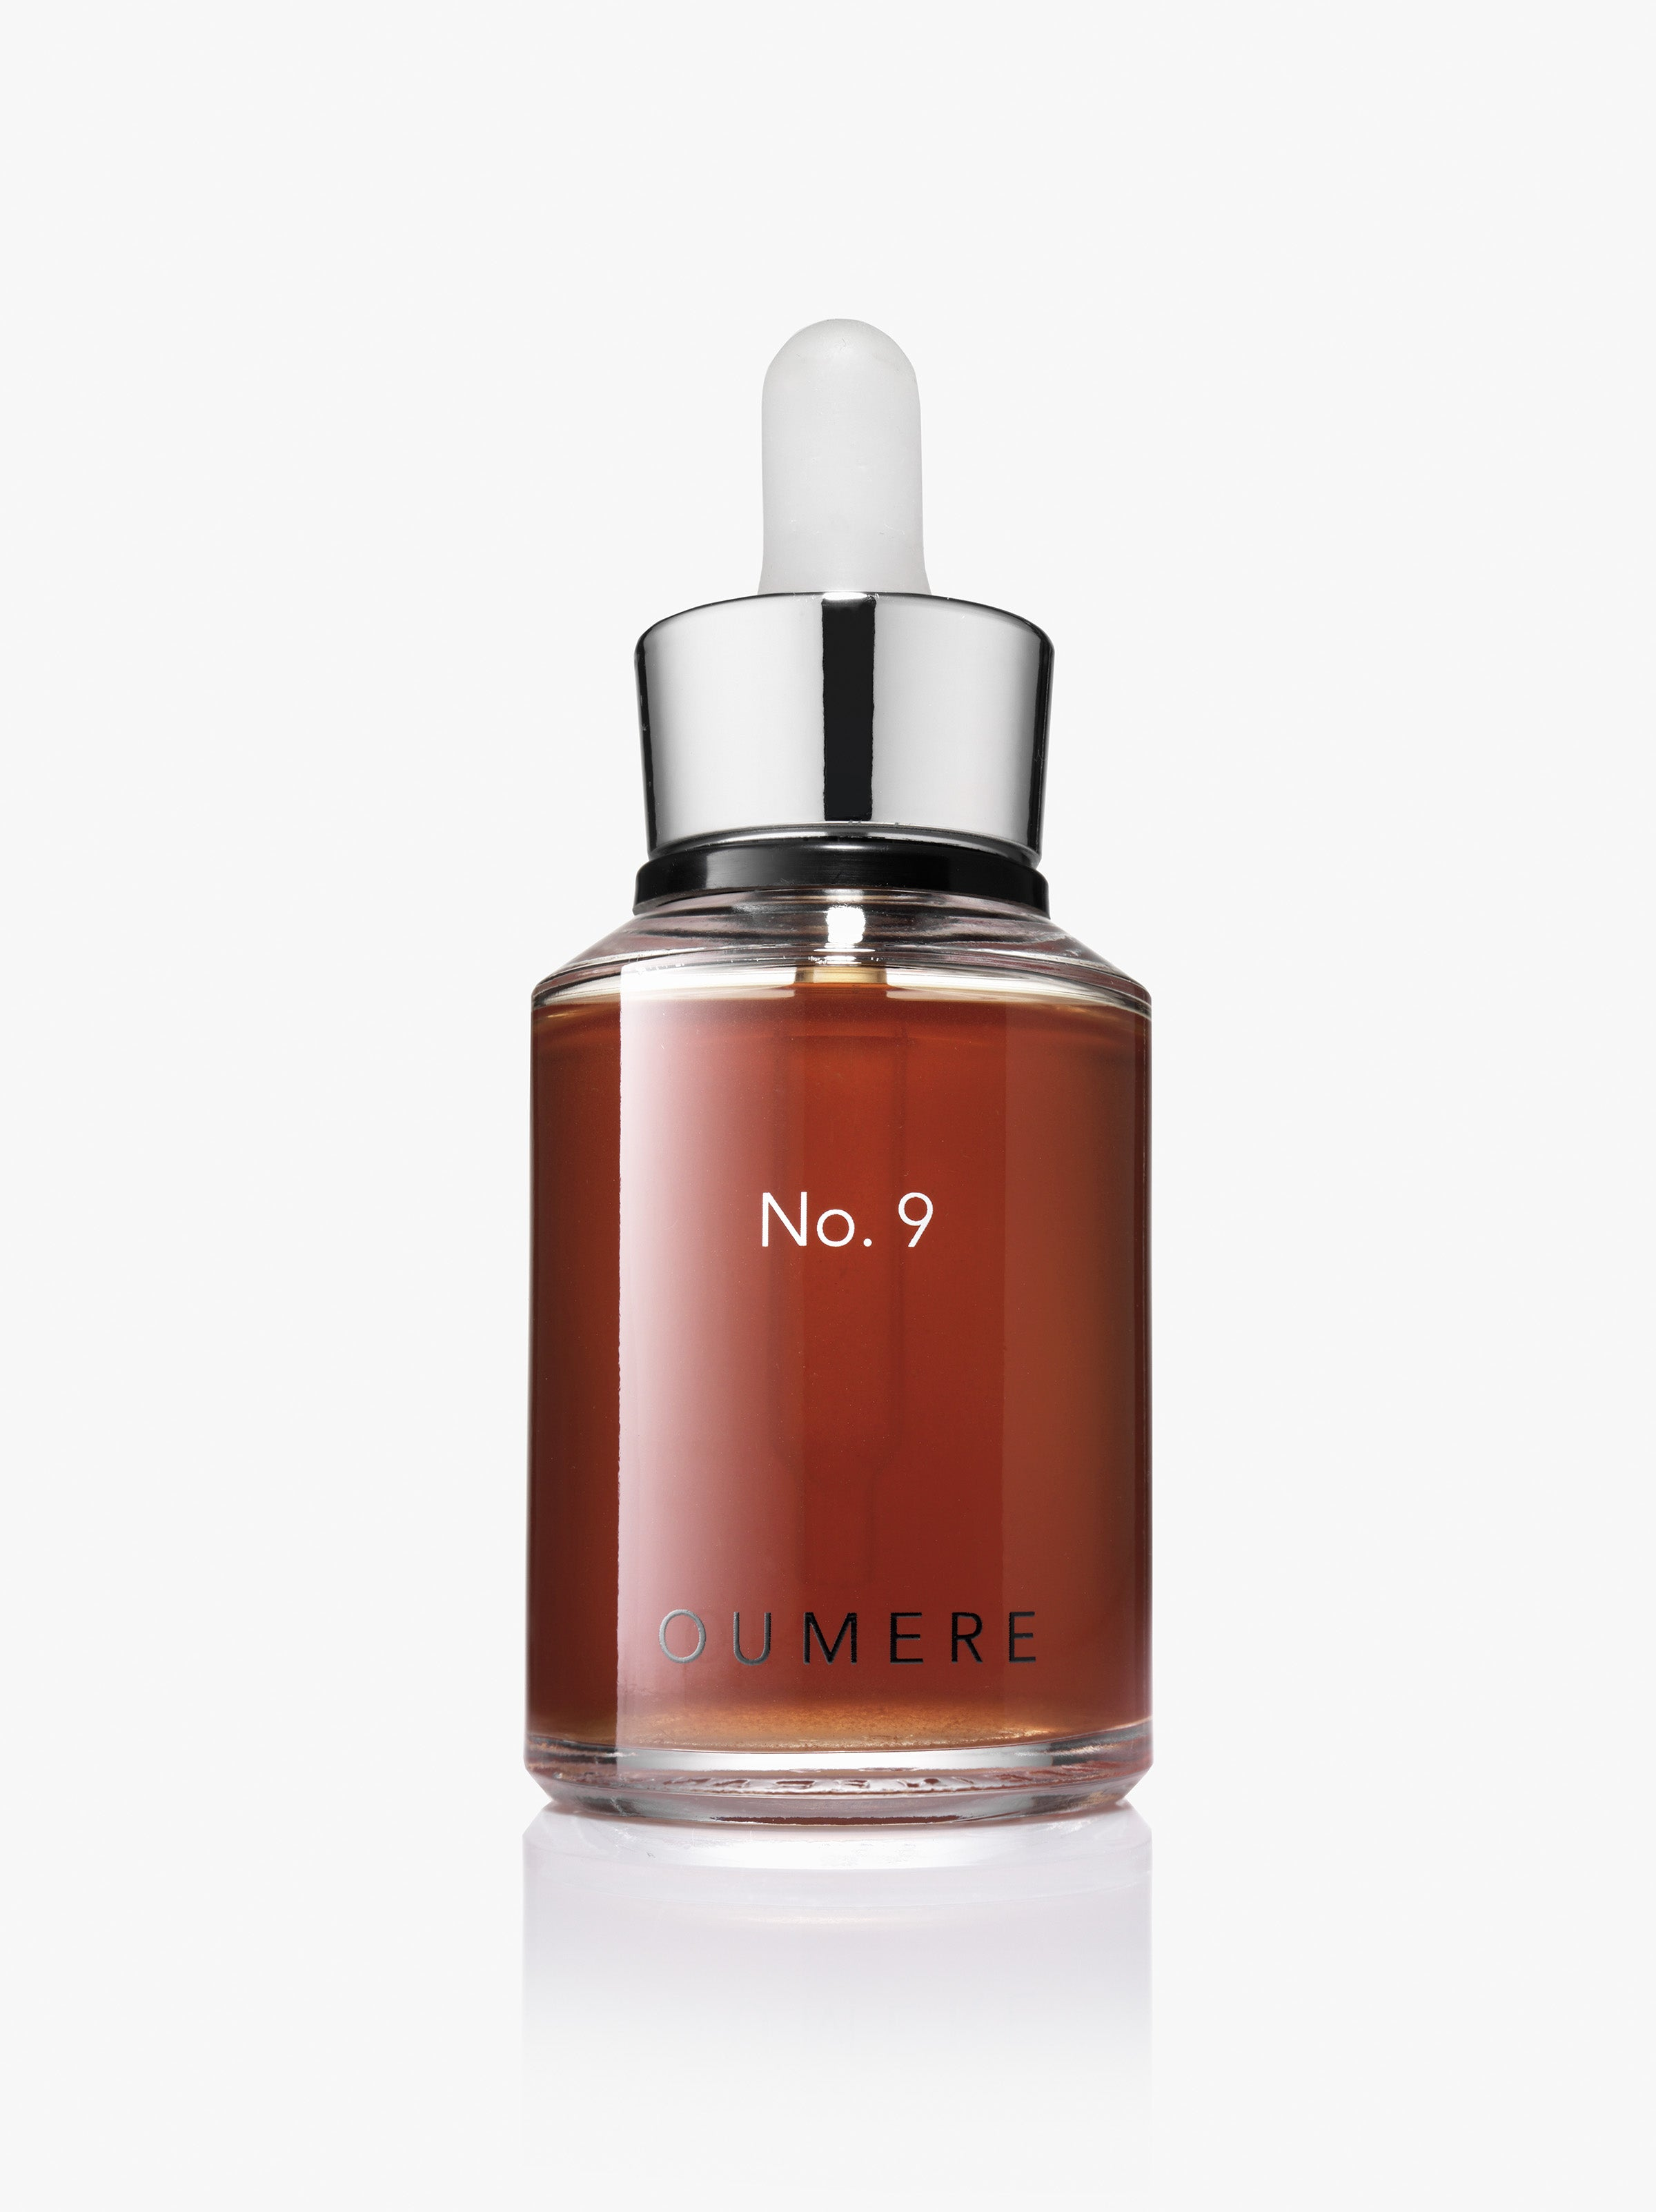 No. 9 Daily Liquid Exfoliant - O U M E R E